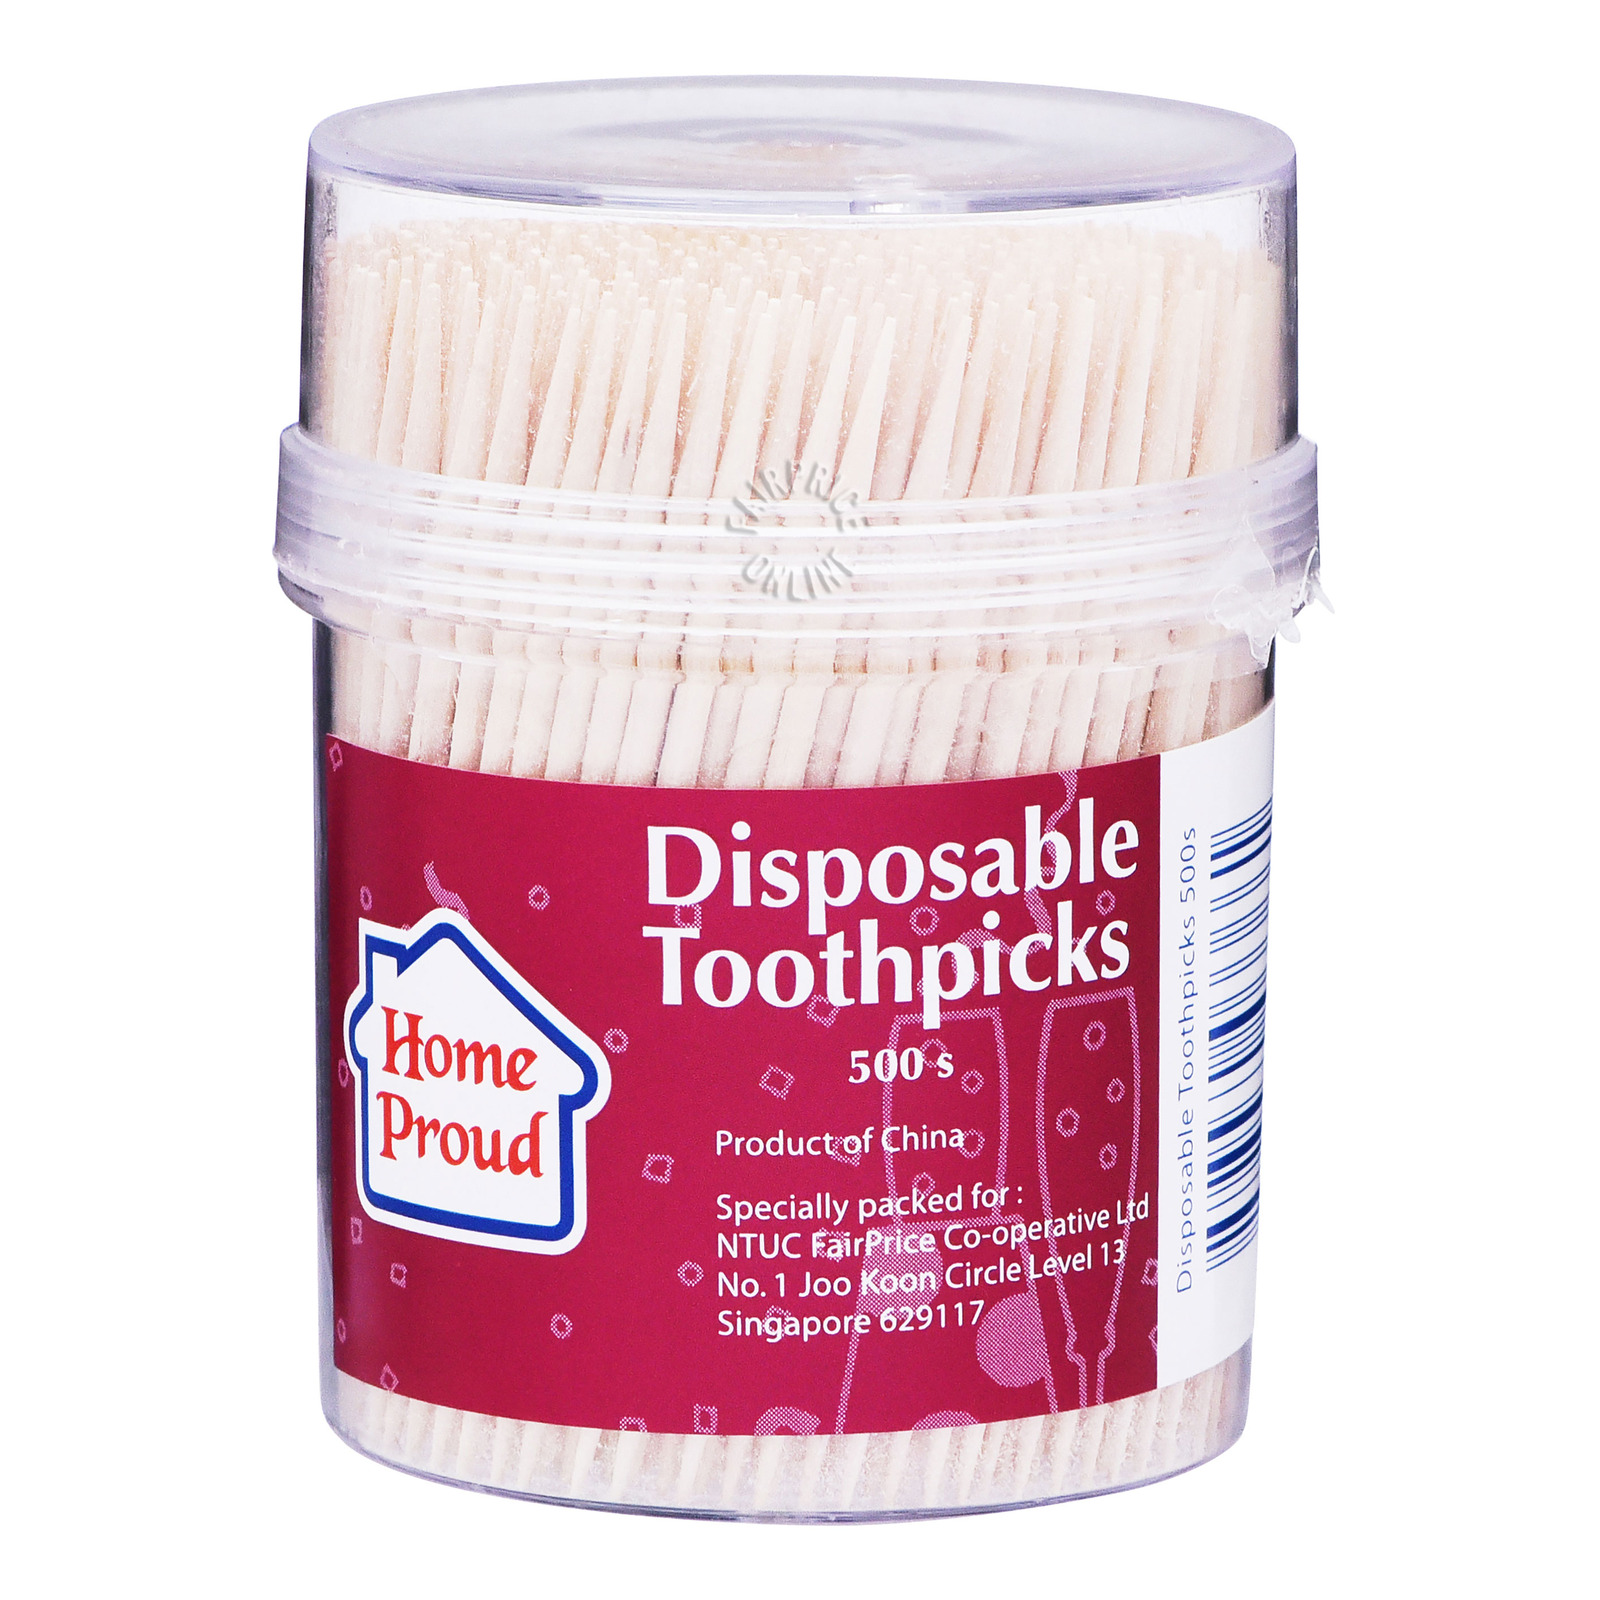 HomeProud Disposable Toothpicks